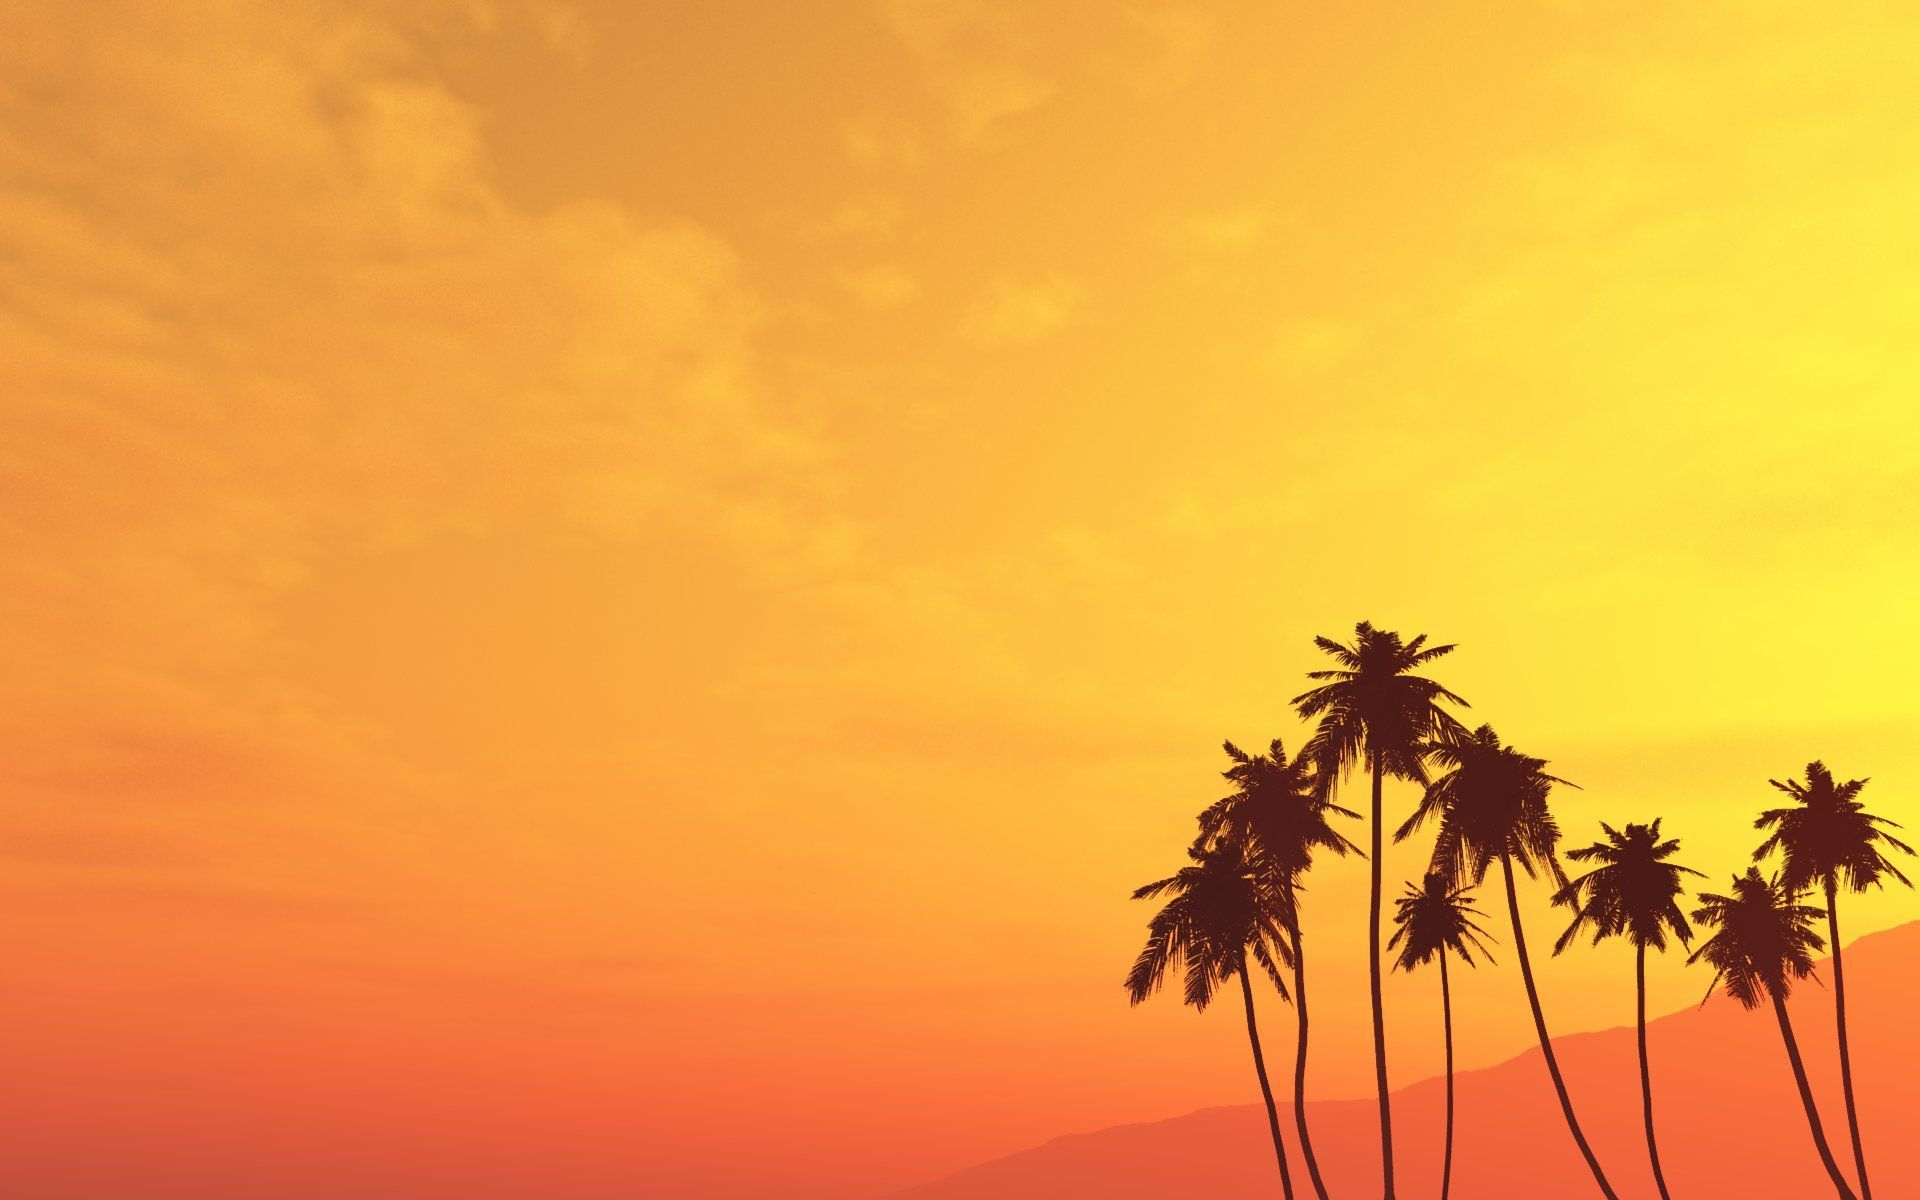 Beach And Palm Trees Wallpaper Free Photoshop Brushes At